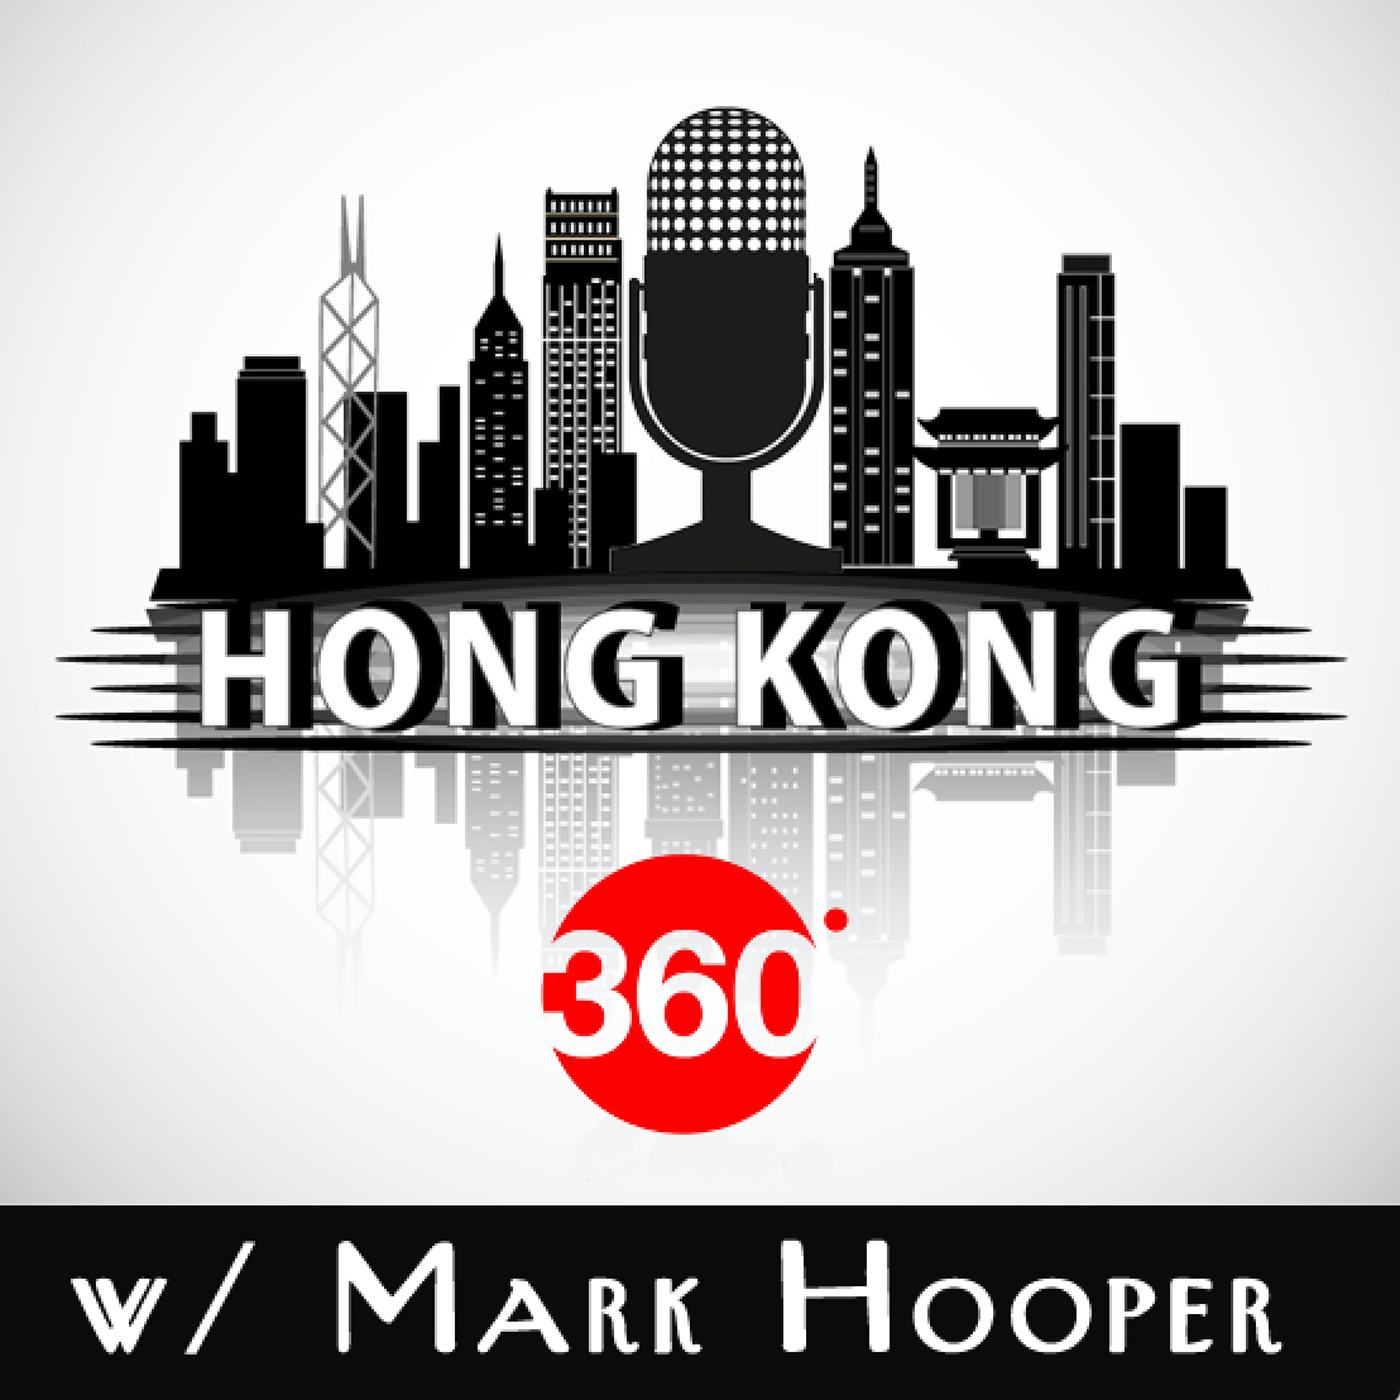 Hong-Kong-360 Station News - RADIOLANTAU.COM